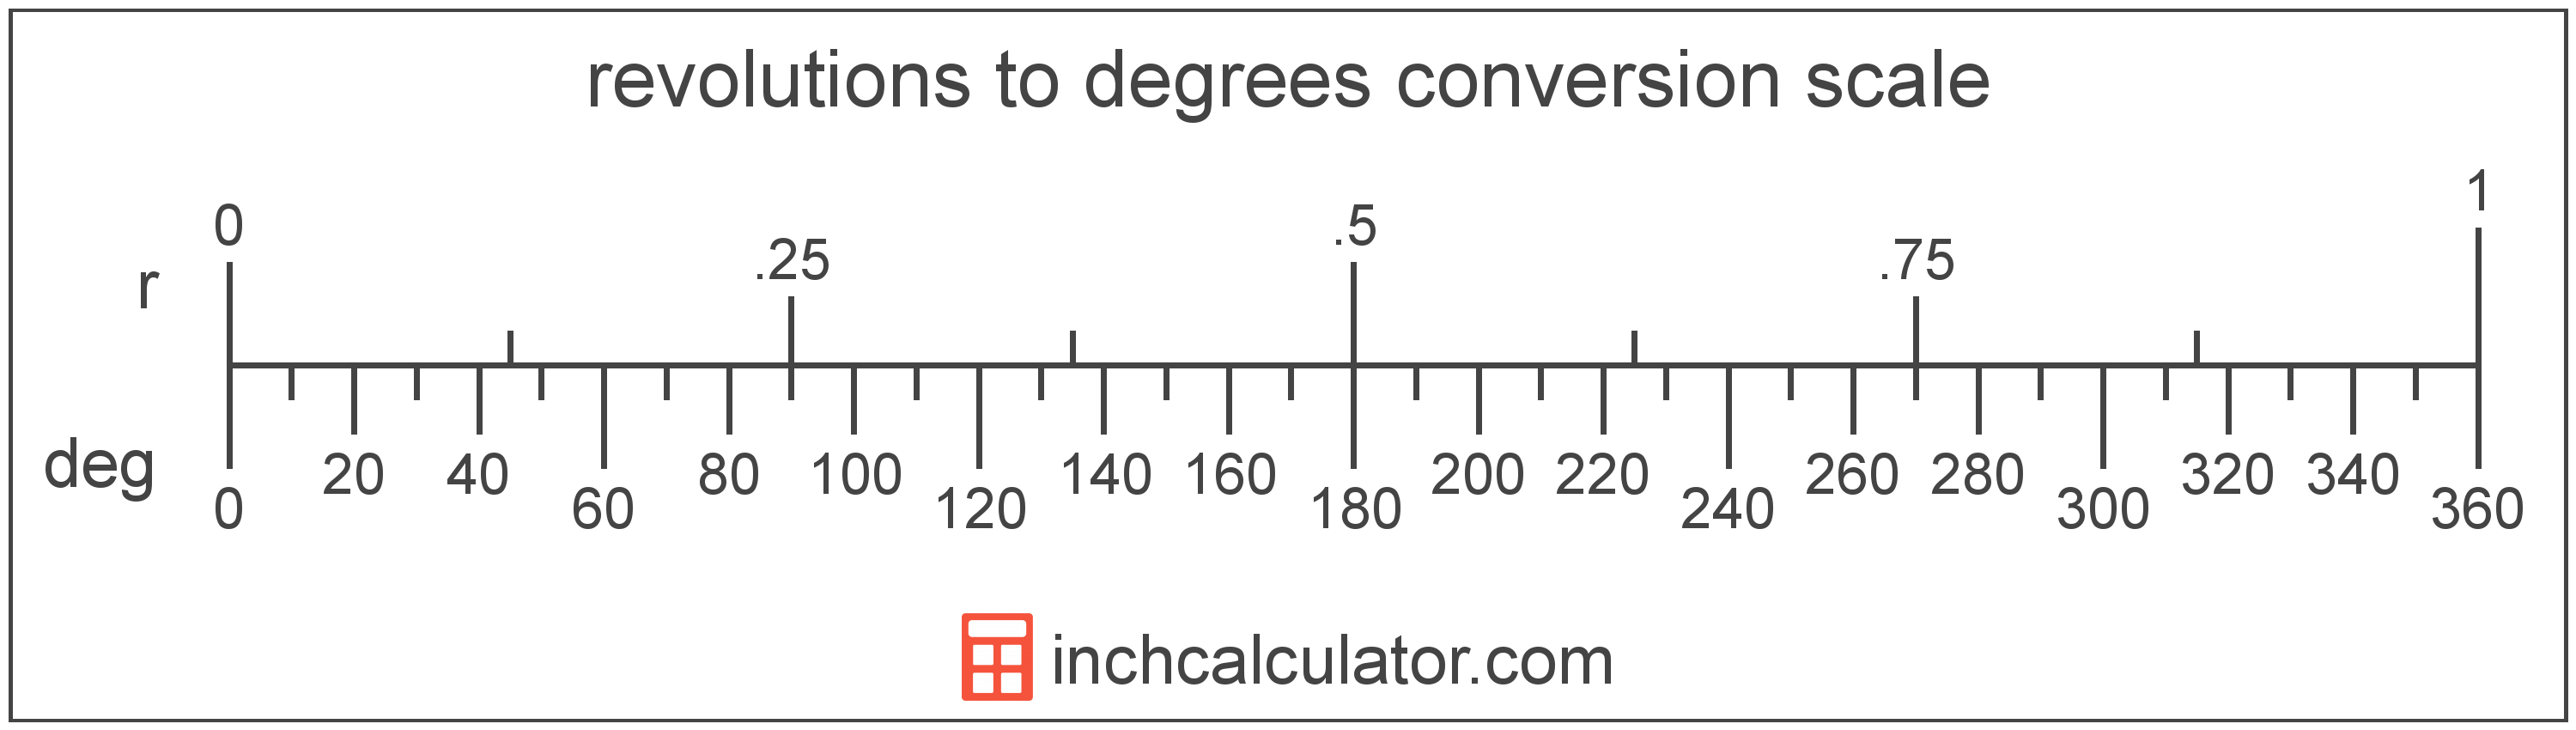 Convert Degrees to Revolutions - (° to r) - Inch Calculator